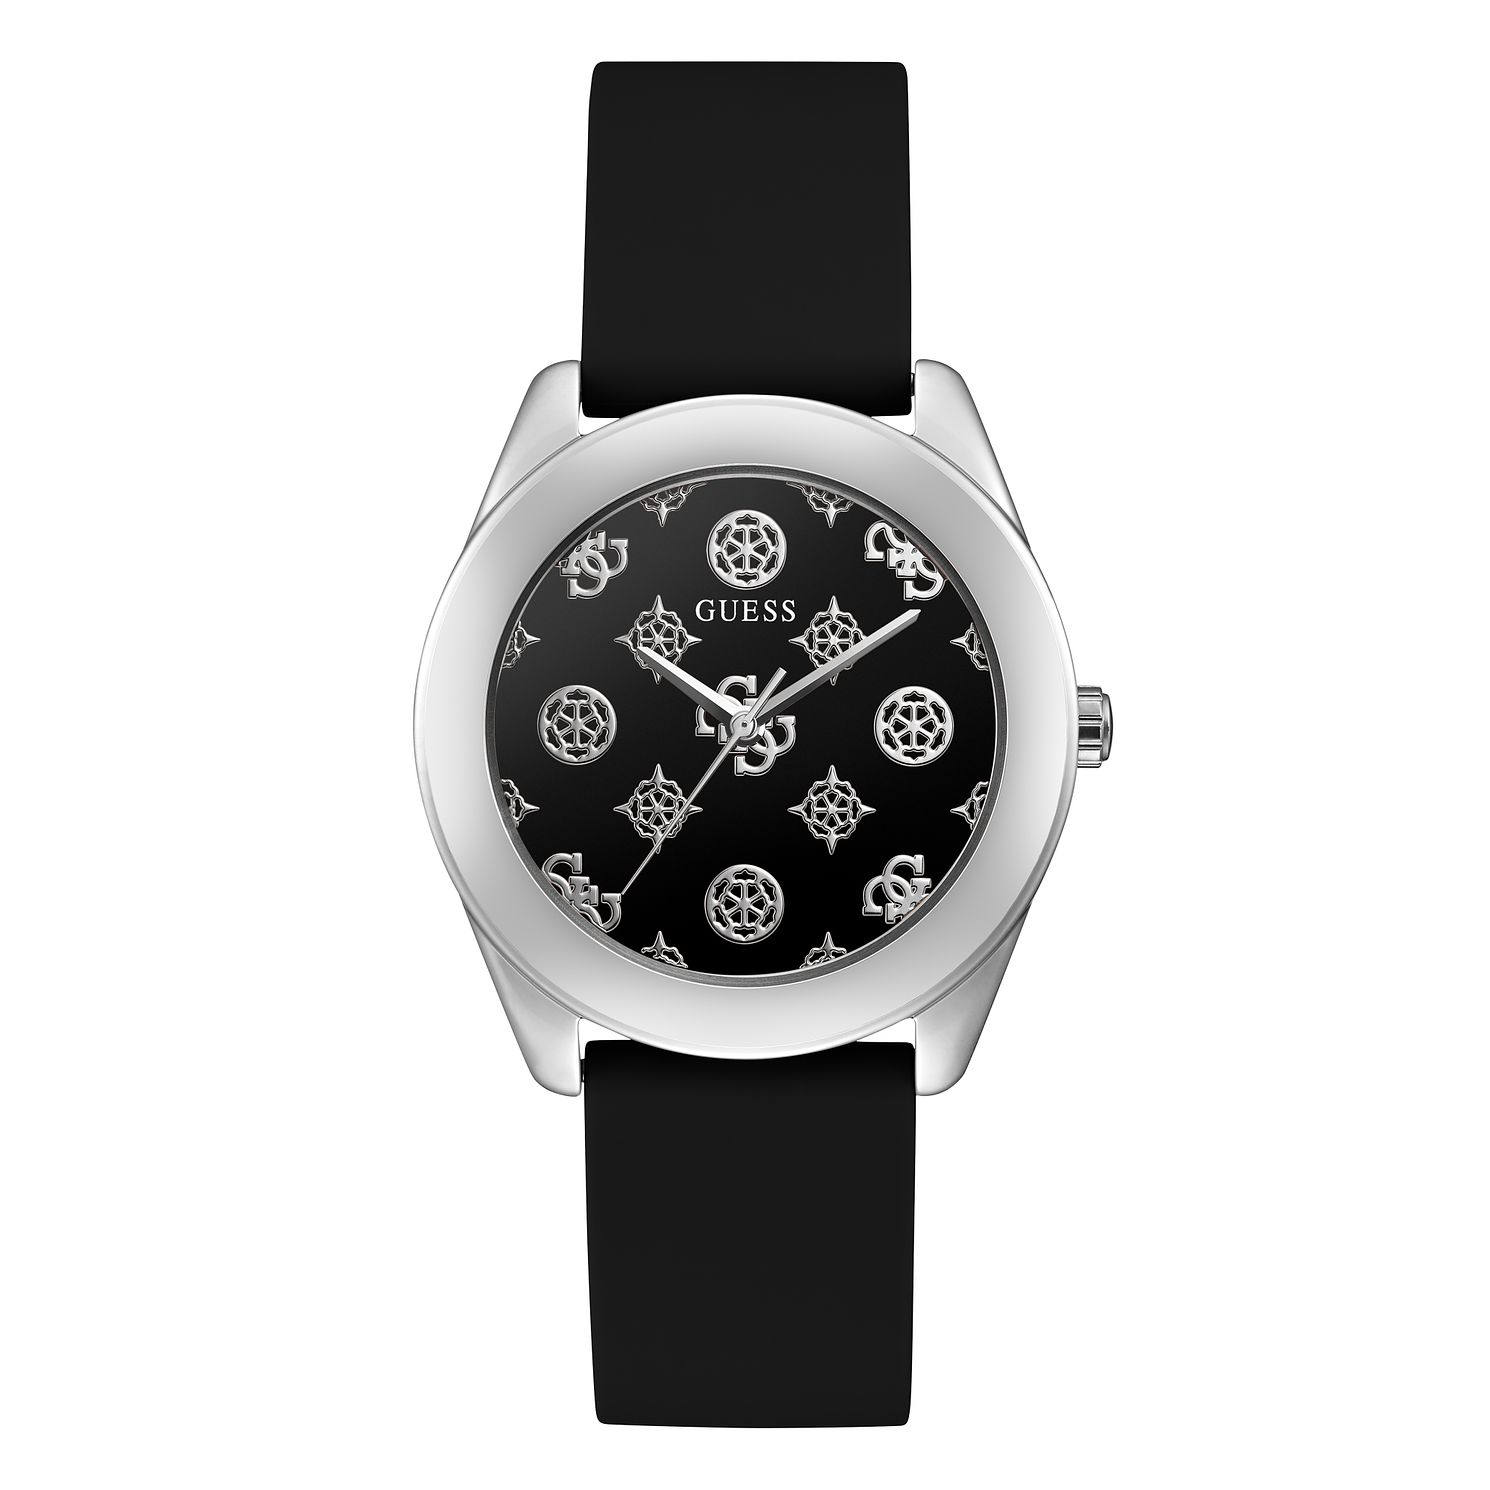 Guess Peony G Ladies' Black Silicone Strap Watch - Product number 1097172